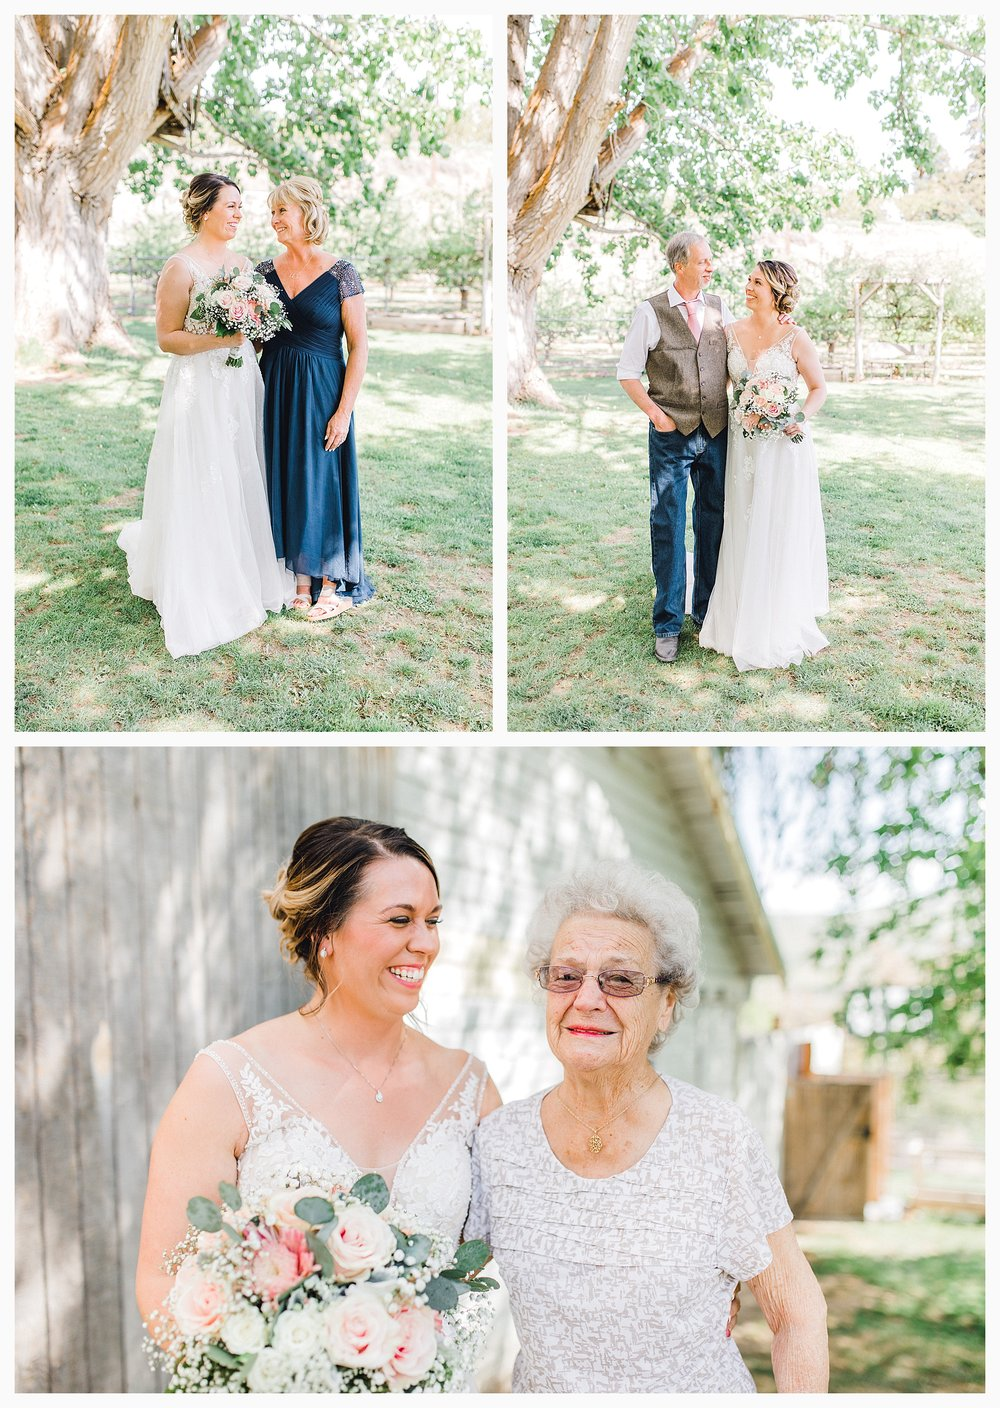 Rustic barn wedding in Wenatchee Washington at Sunshine Ranch on Easy Street, Emma Rose Company Seattle PNW Light and Airy Wedding Photographer_0056.jpg